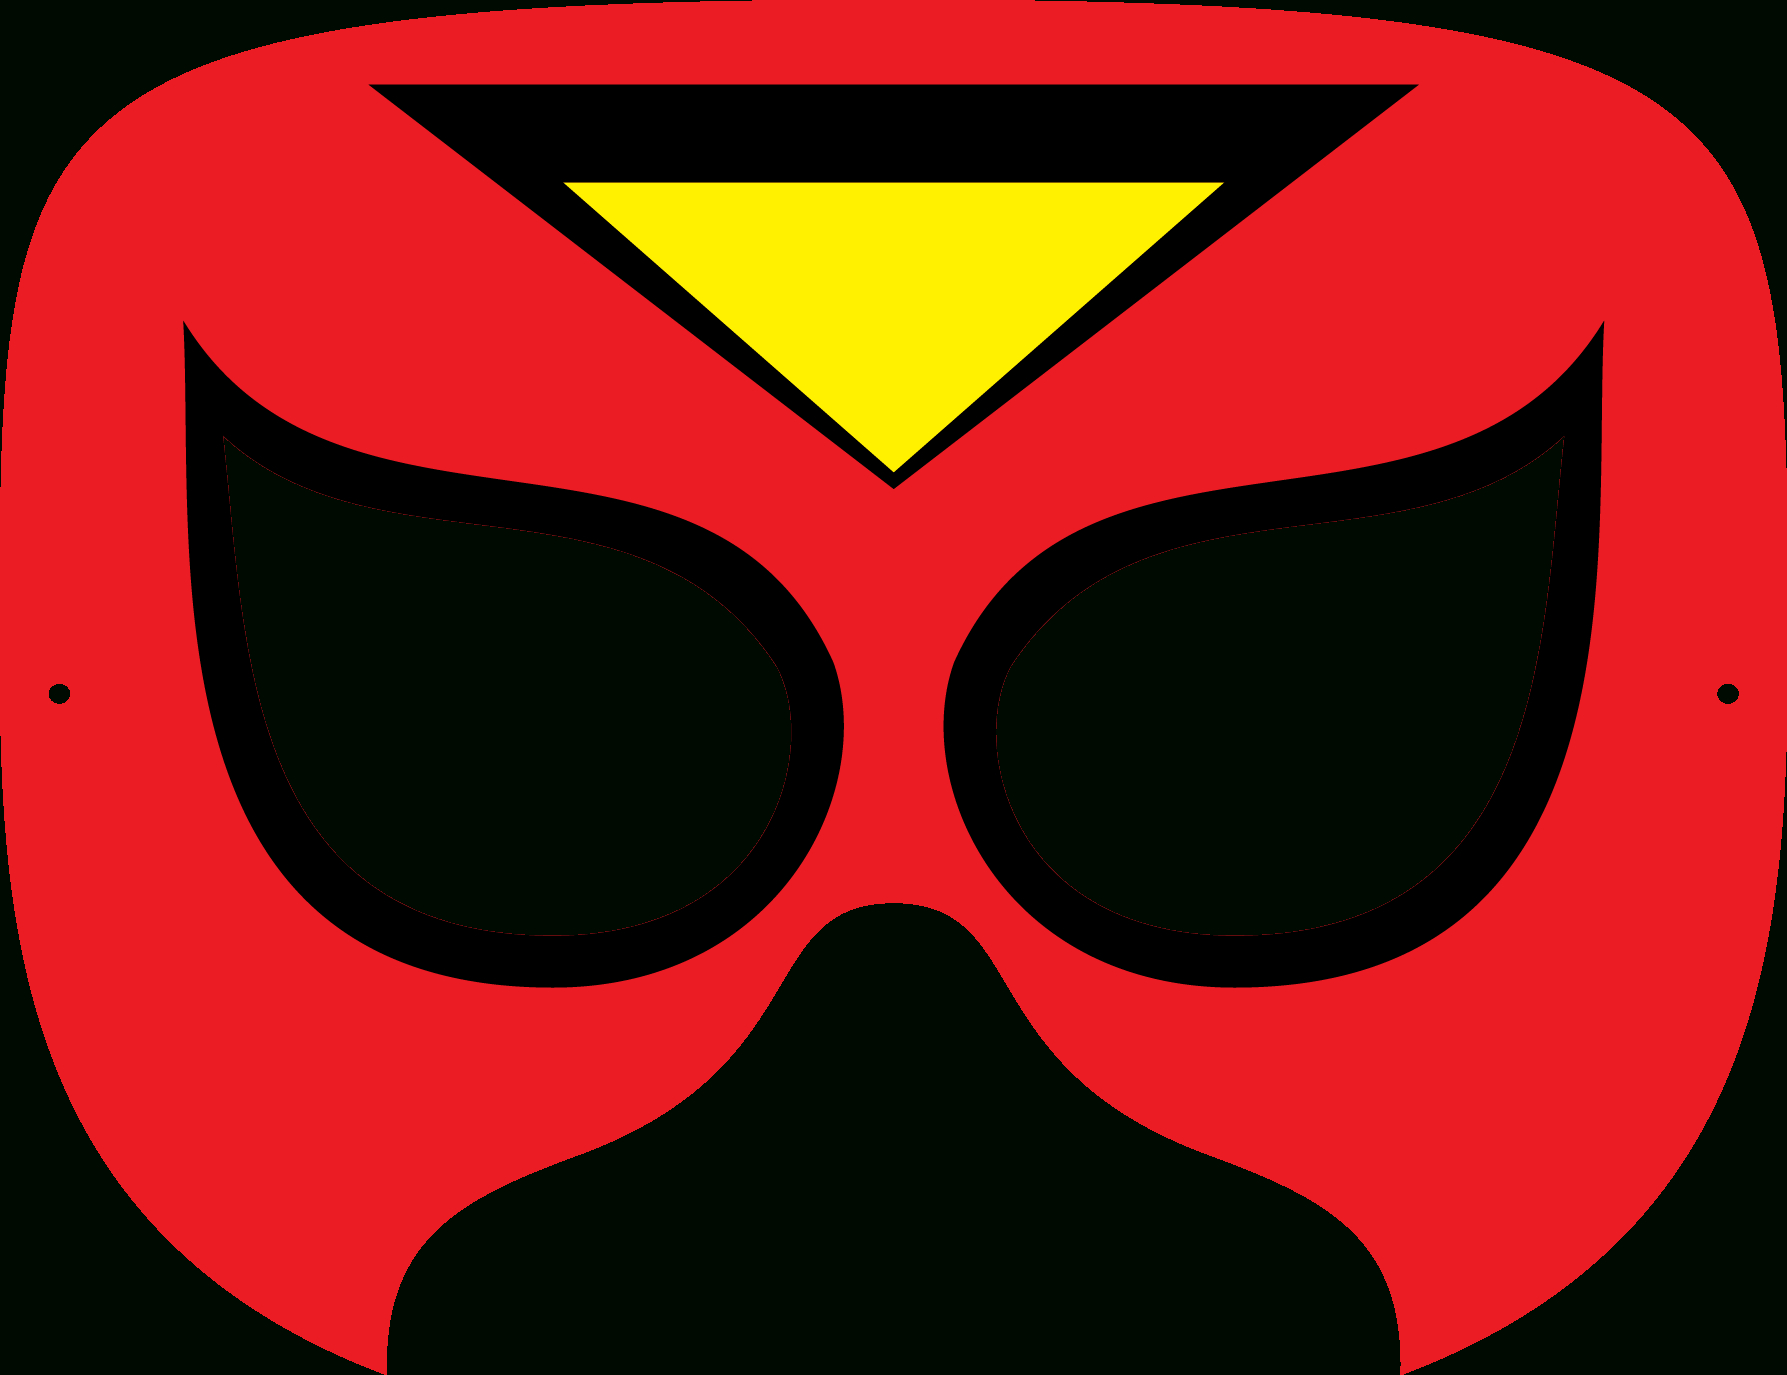 Superhero Mask Template | Free Download Best Superhero Mask Template - Superman Mask Printable Free